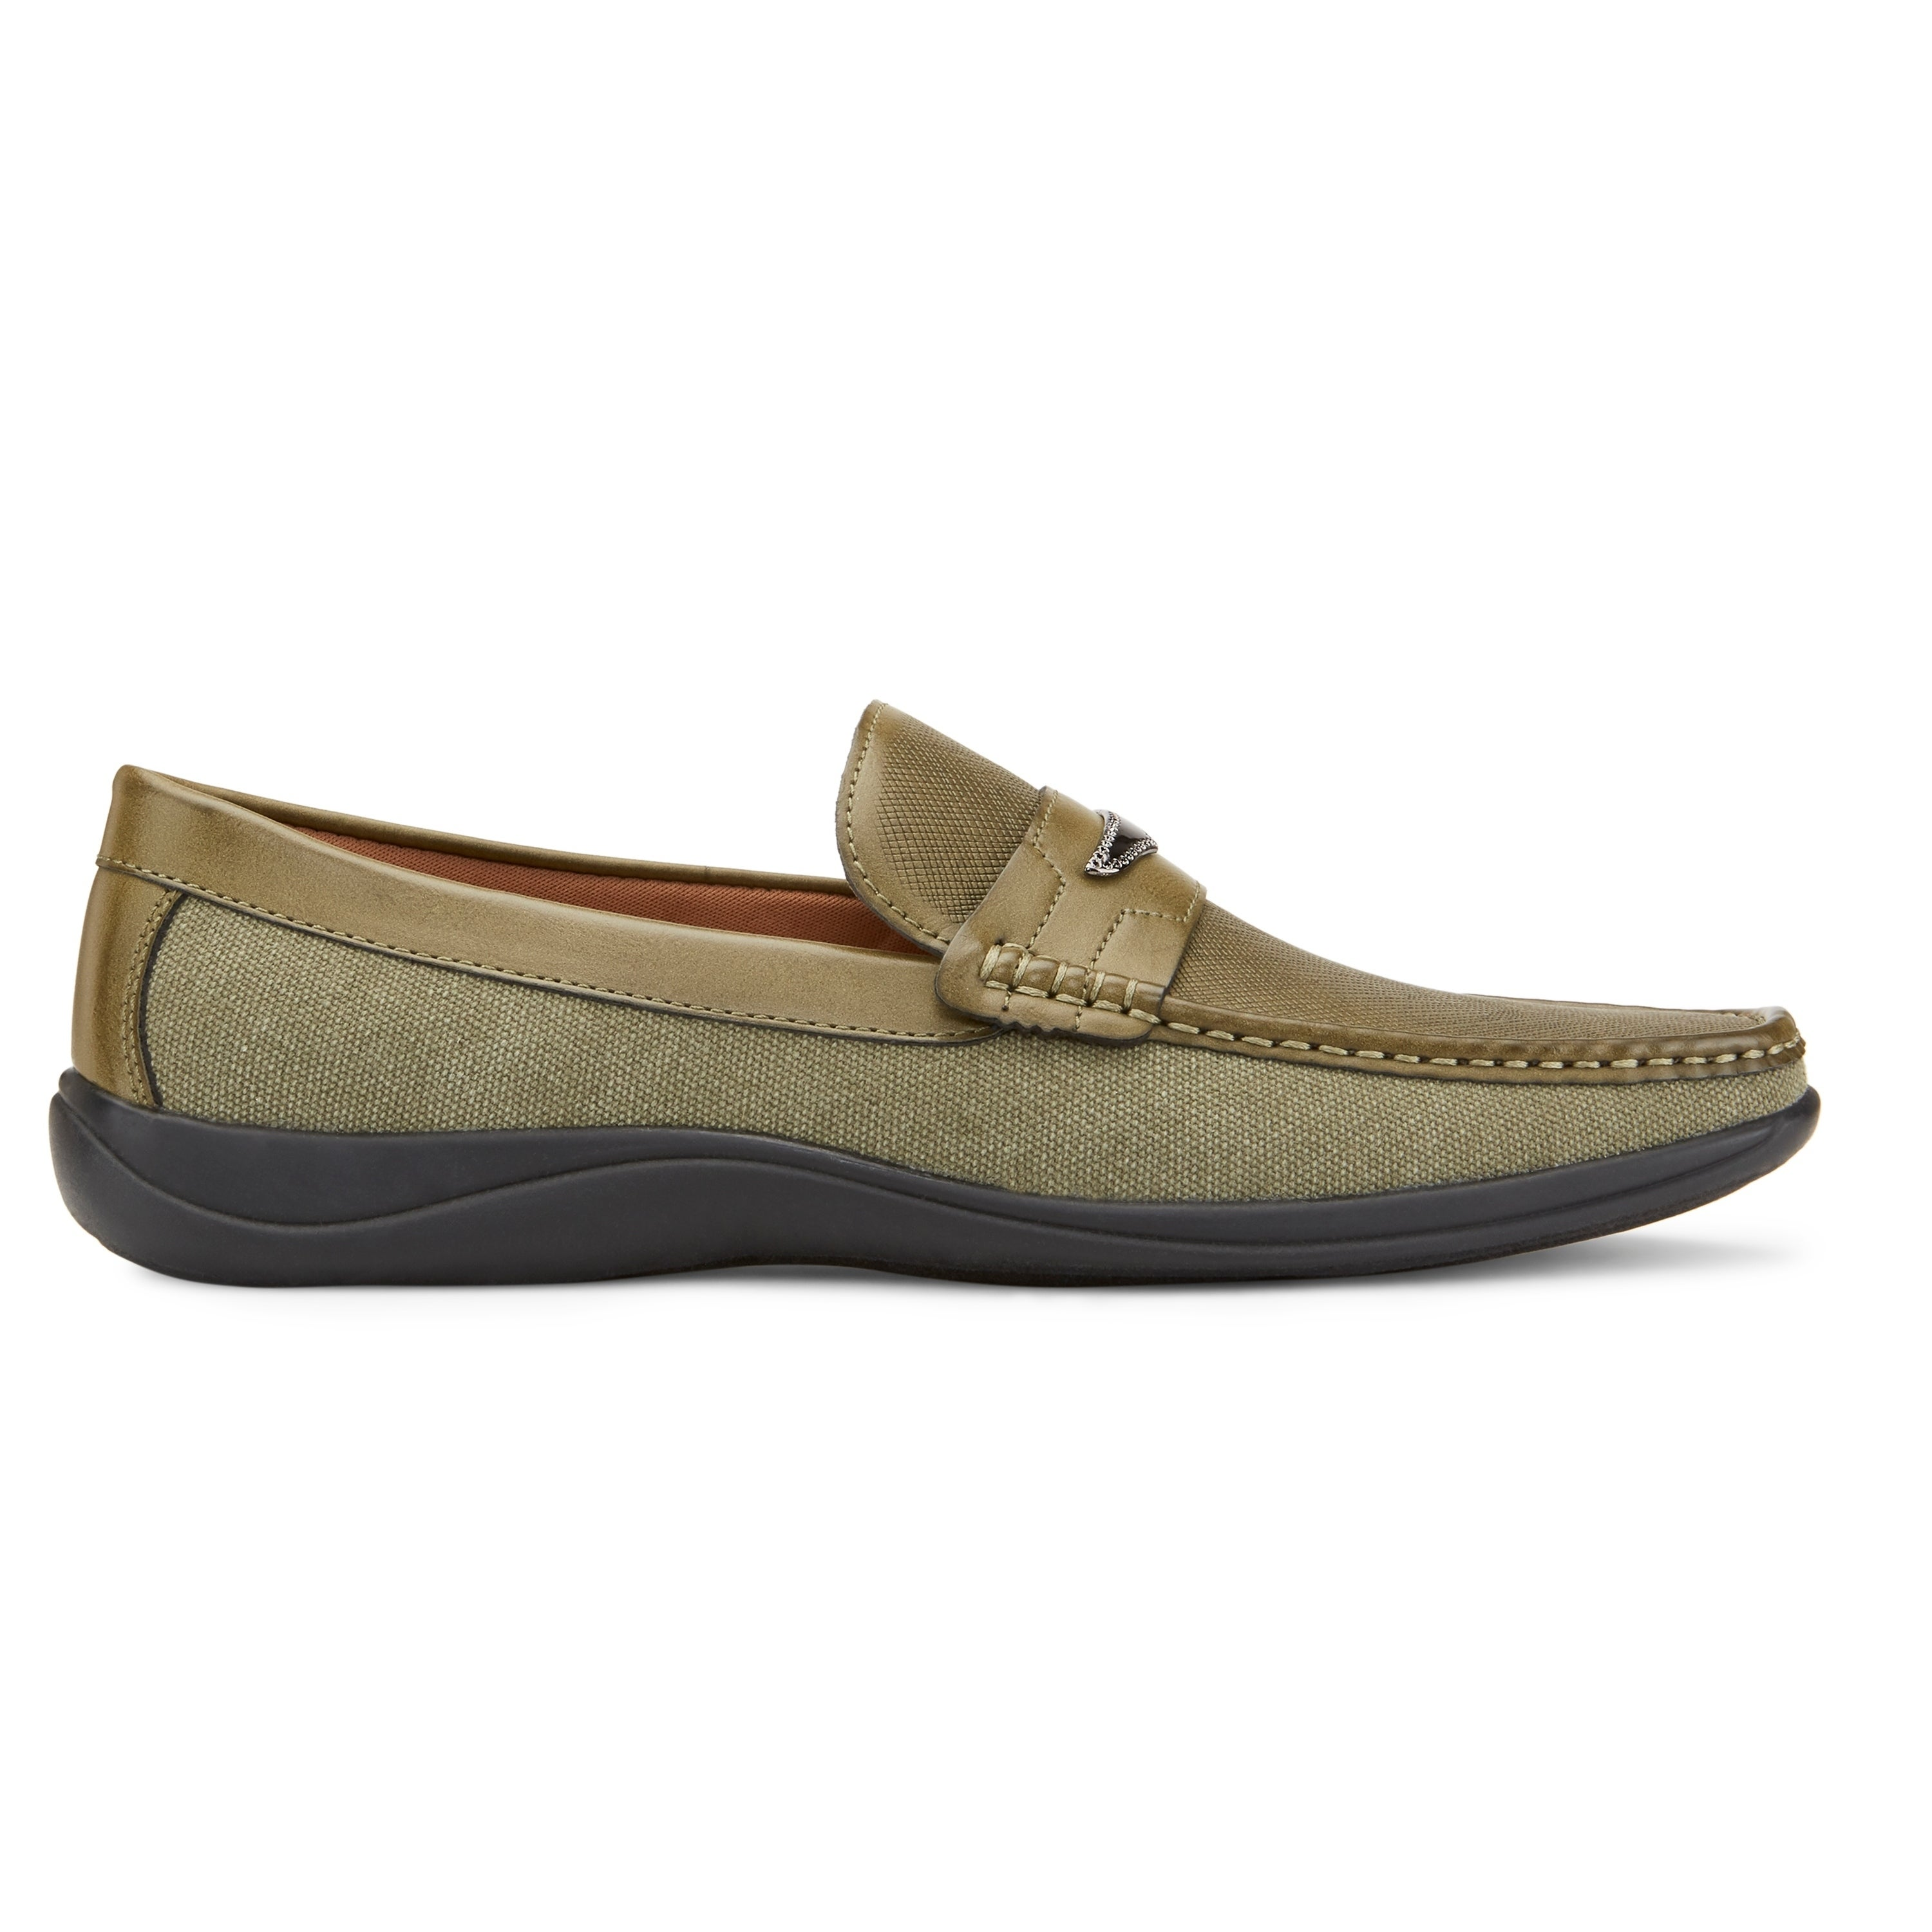 d28858cd921 Shop Xray Men s Burdett Loafer Dress Shoe - On Sale - Free Shipping On  Orders Over  45 - Overstock - 26981511